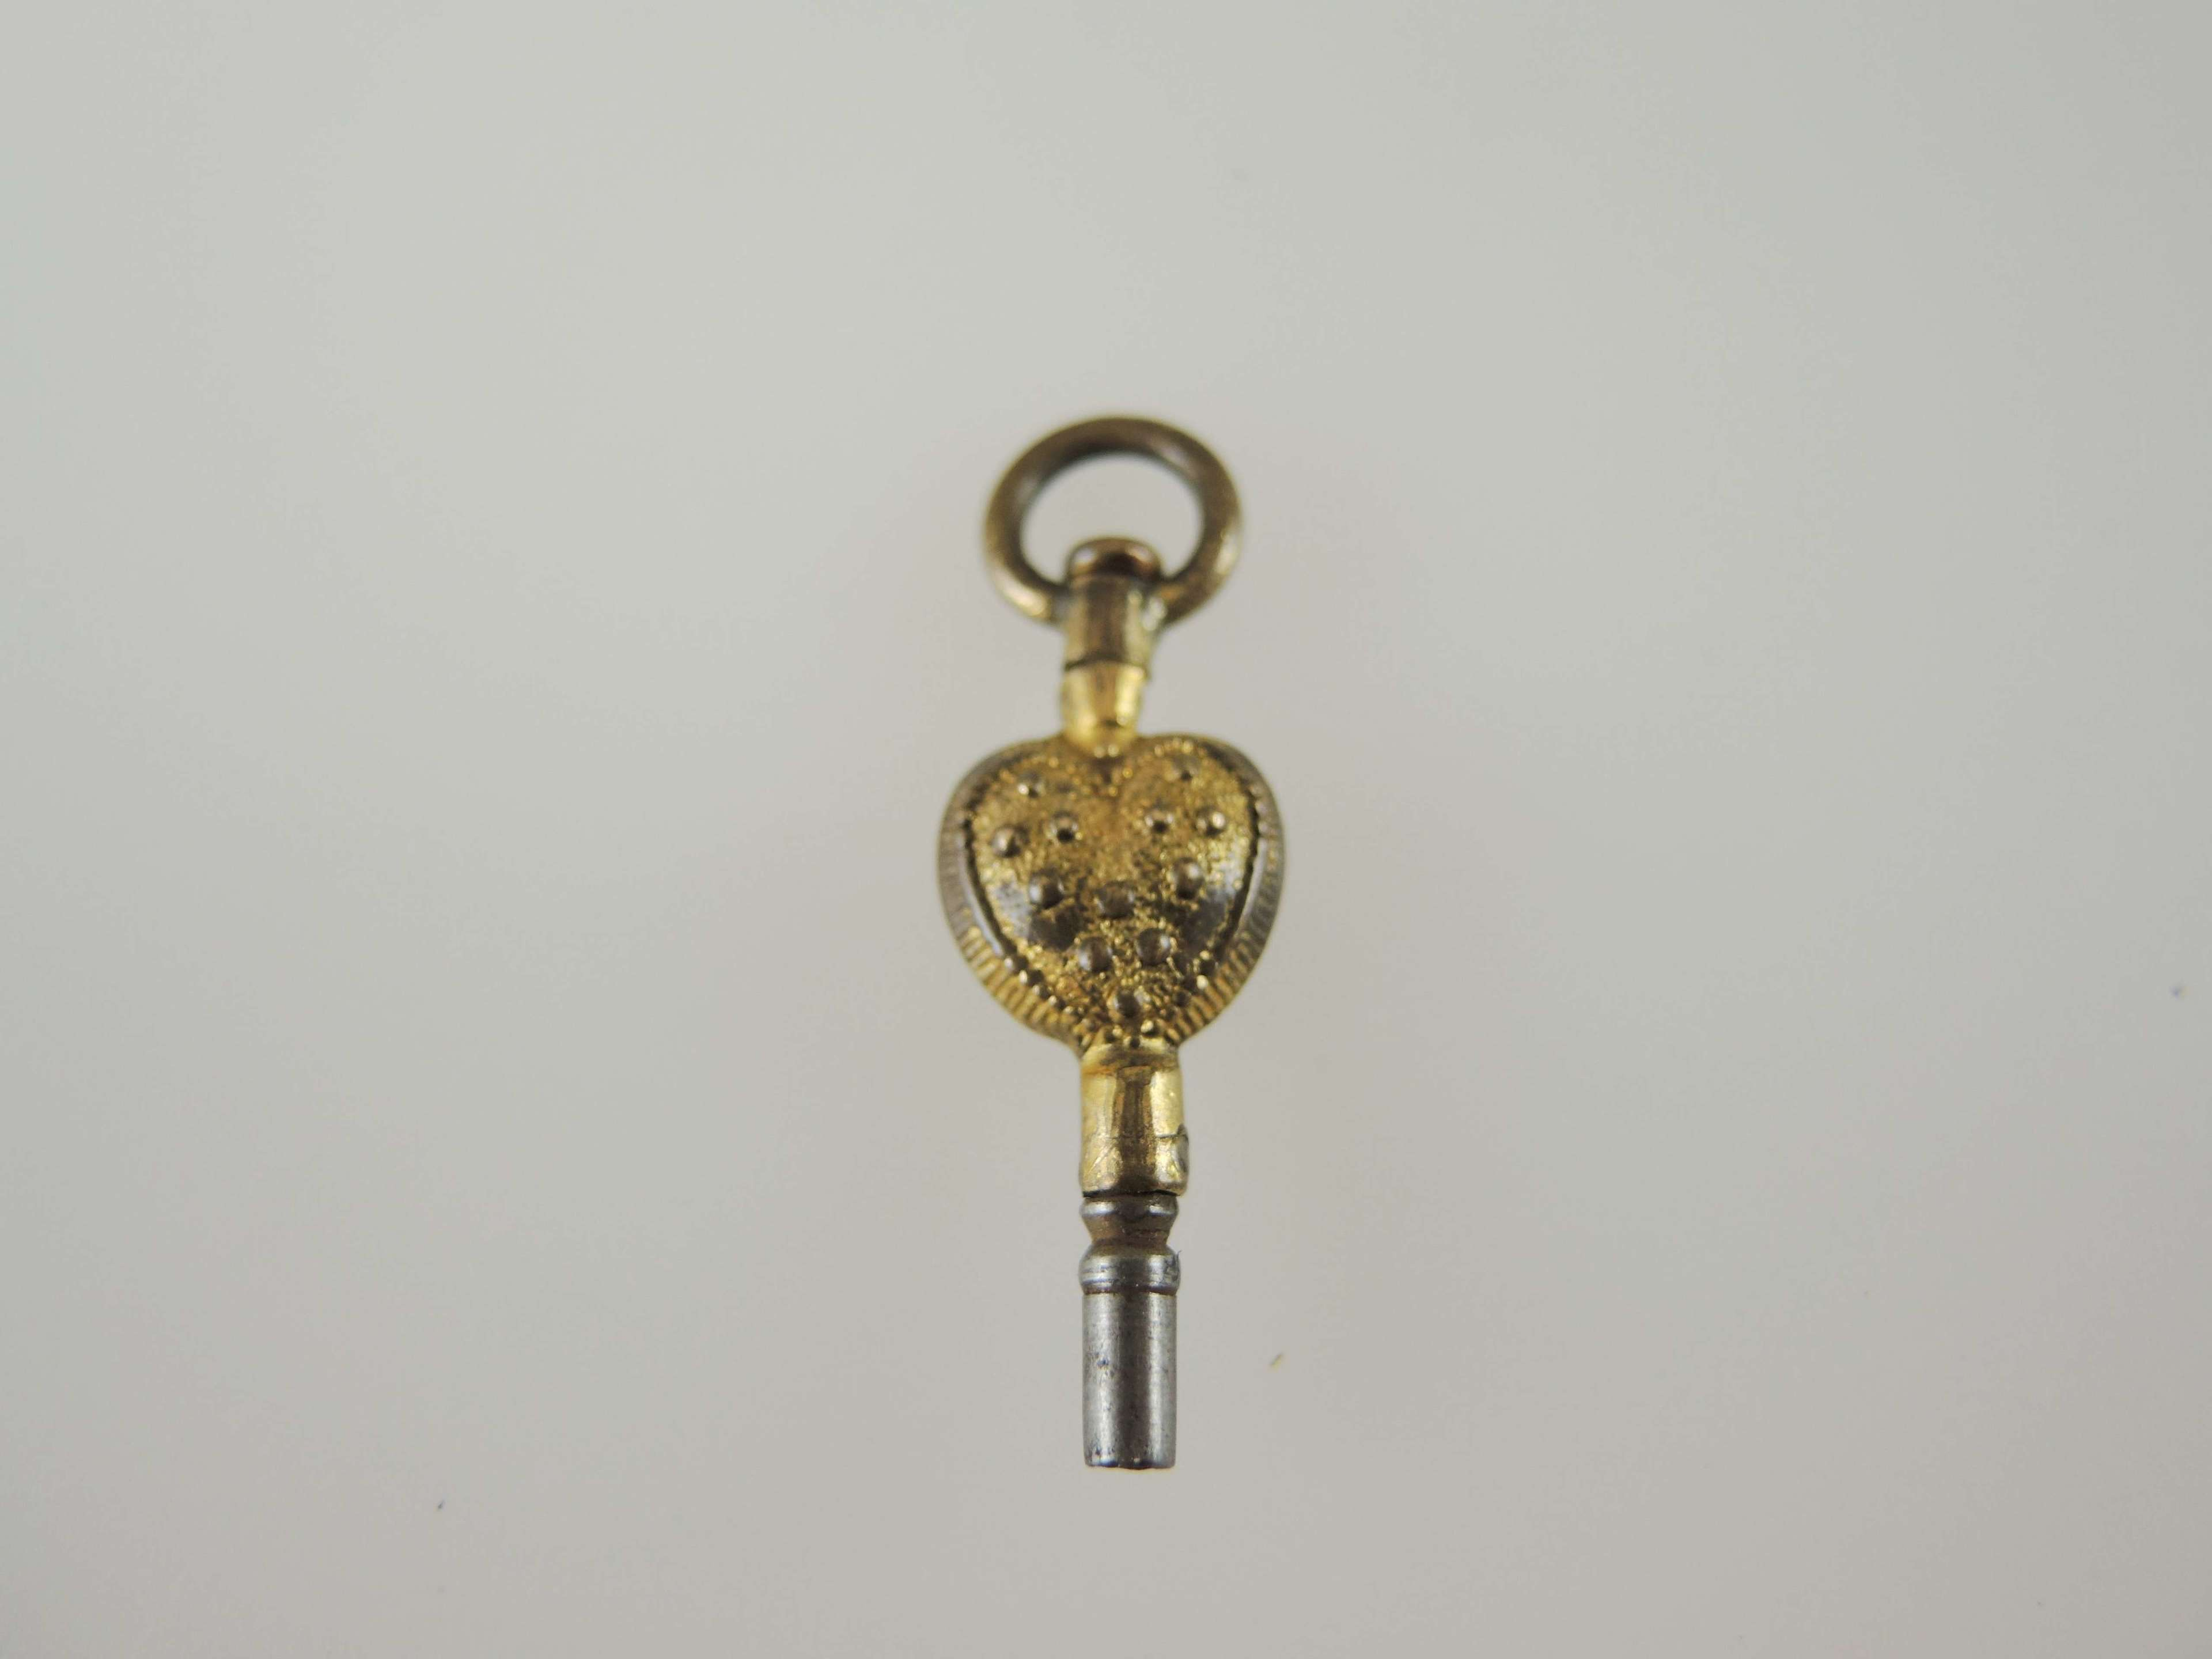 Gilt Heart shaped antique pocket watch key c1780